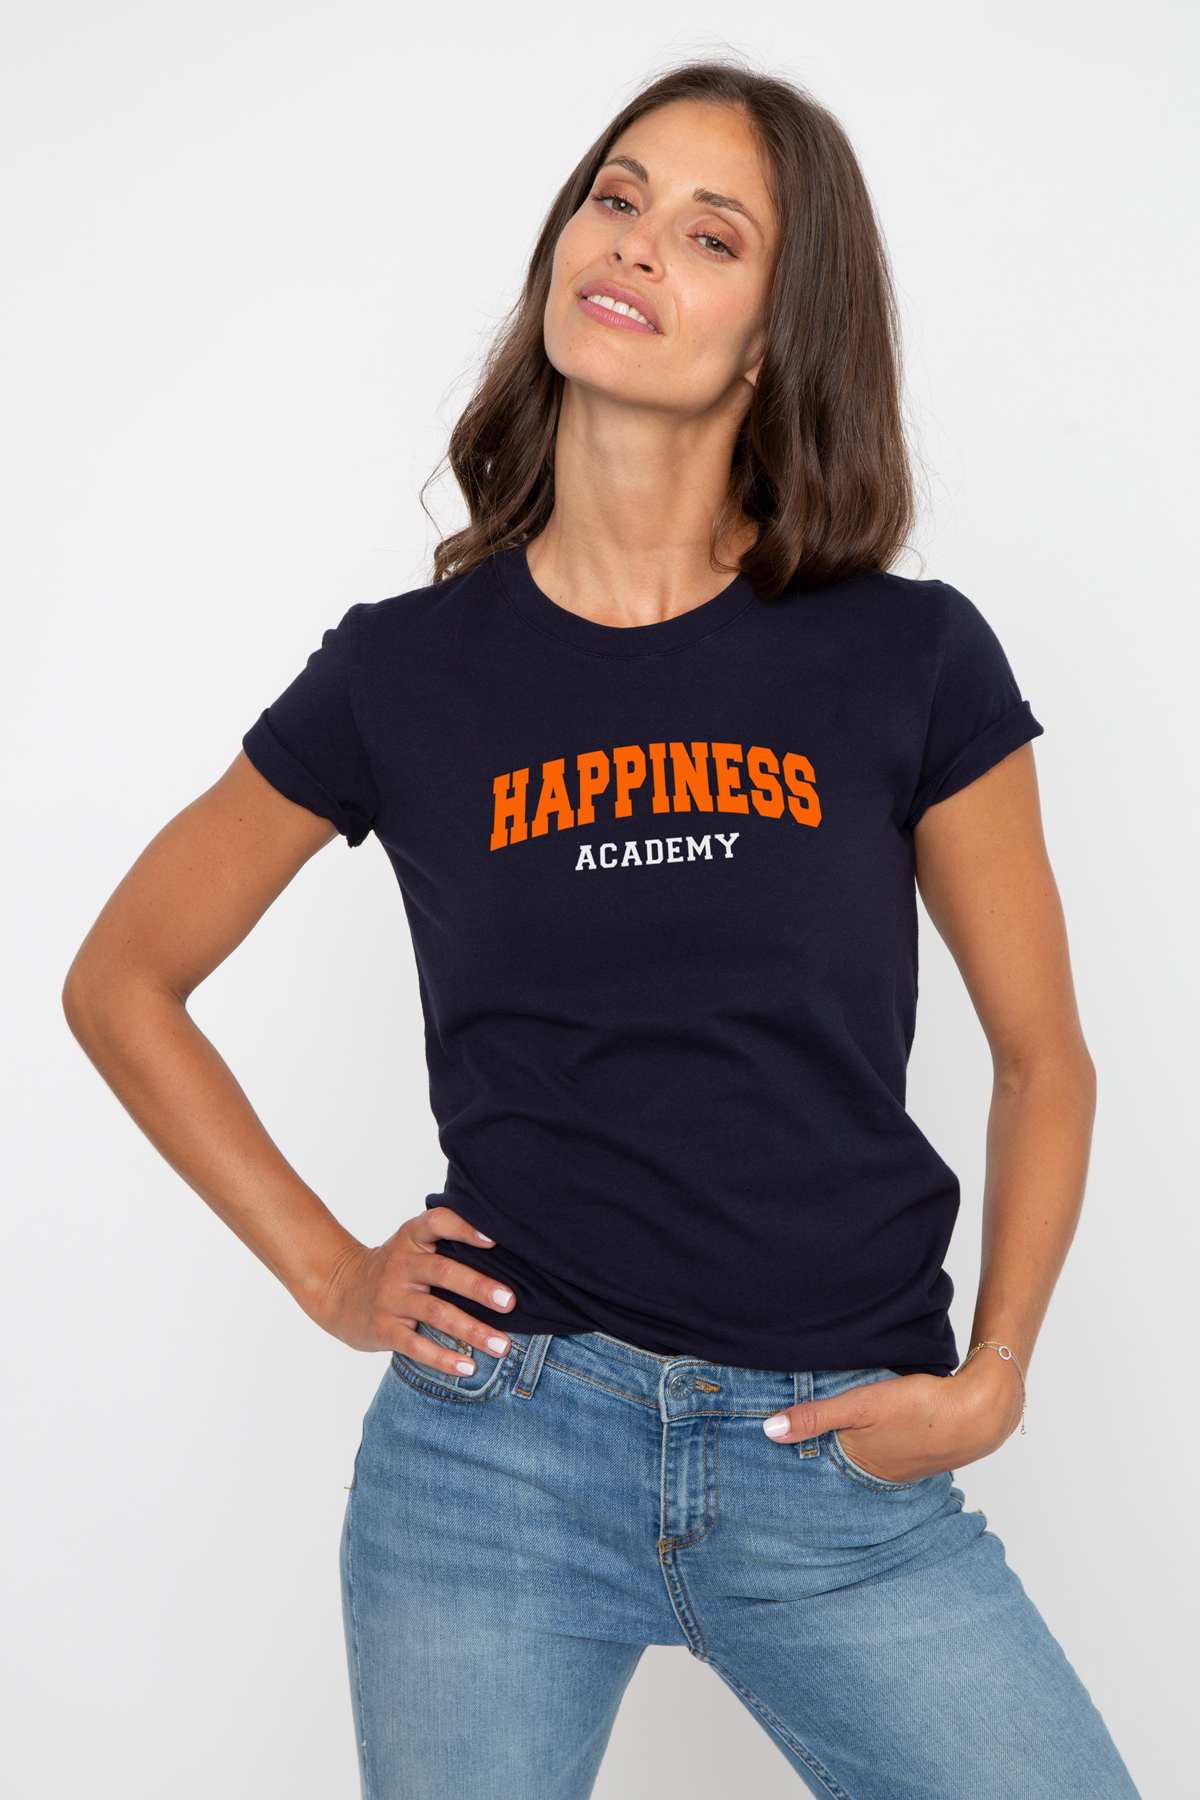 T-shirt HAPPINESS ACADEMY